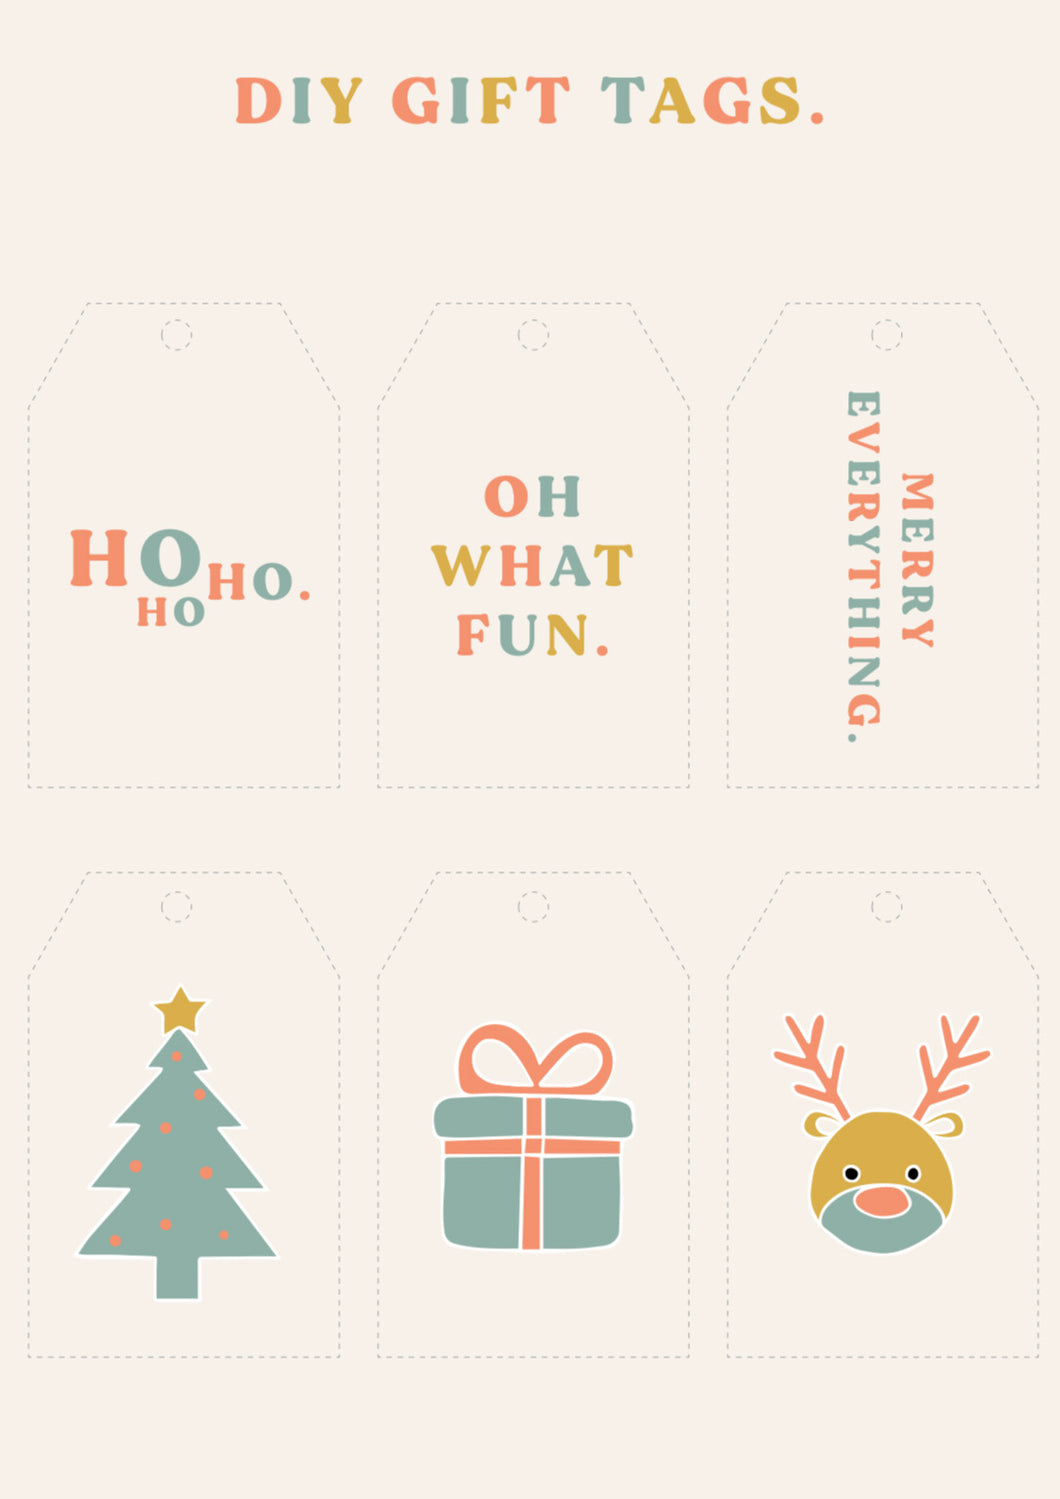 DIY Gift Tags // FREE CHRISTMAS PRINTABLE